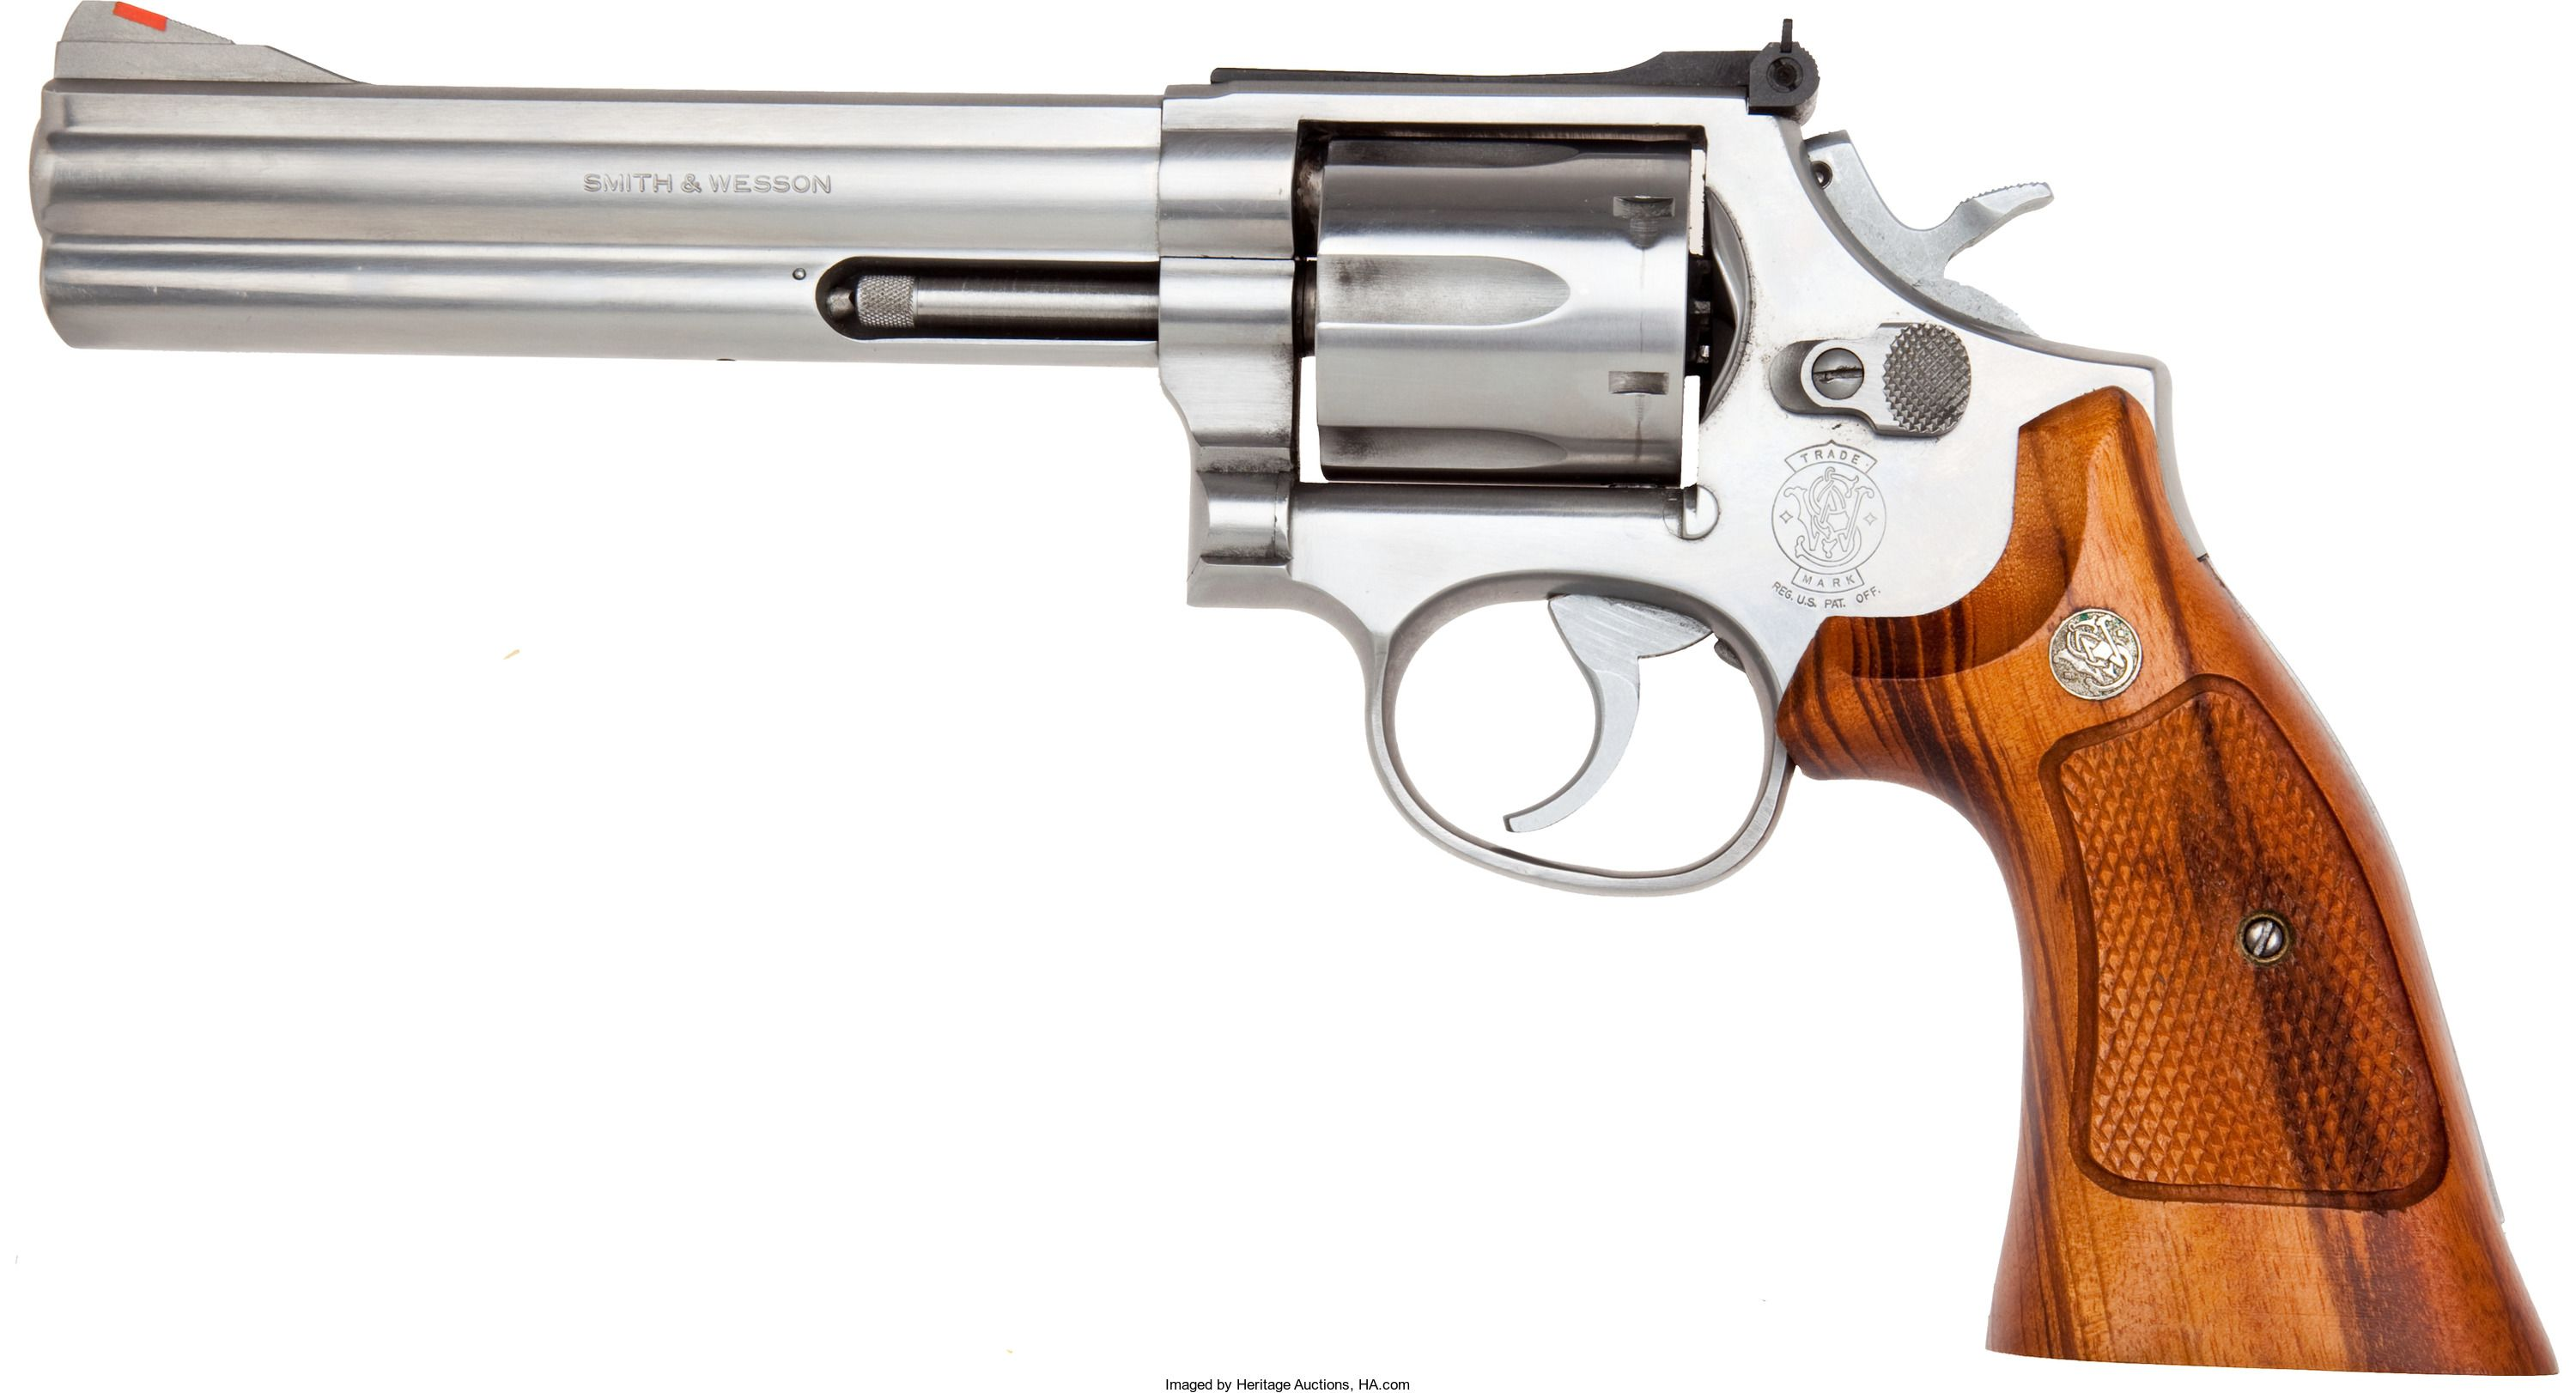 357 SW Model 686 Double Action Revolver Serial No AJW1702 Magnum 6 Inch Barrel Stainless Steel Finish With Checkered Walnut Grips